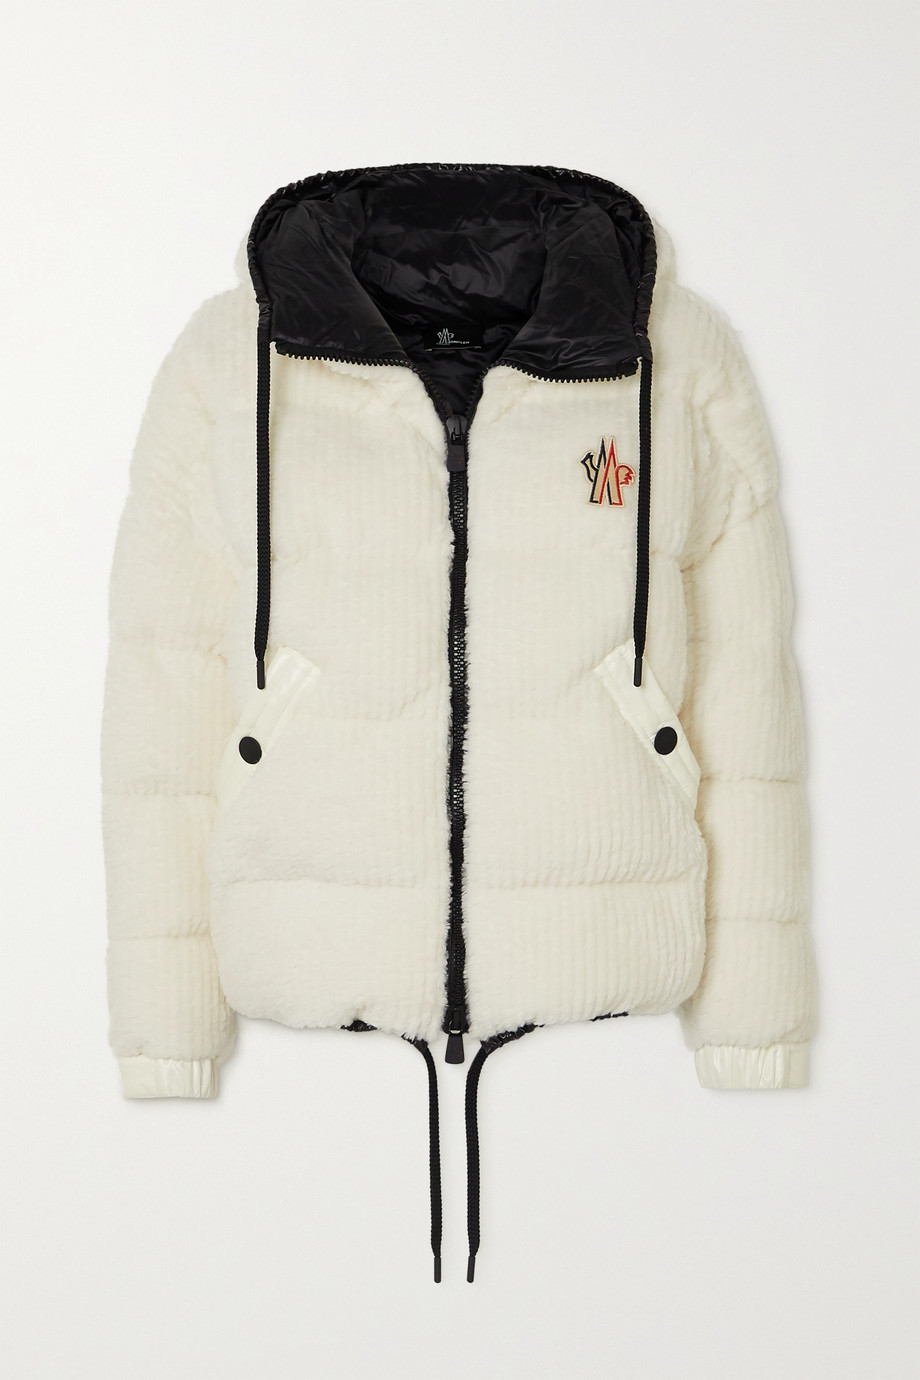 Moncler Grenoble Maglia quilted ribbed fleece down ski jacket